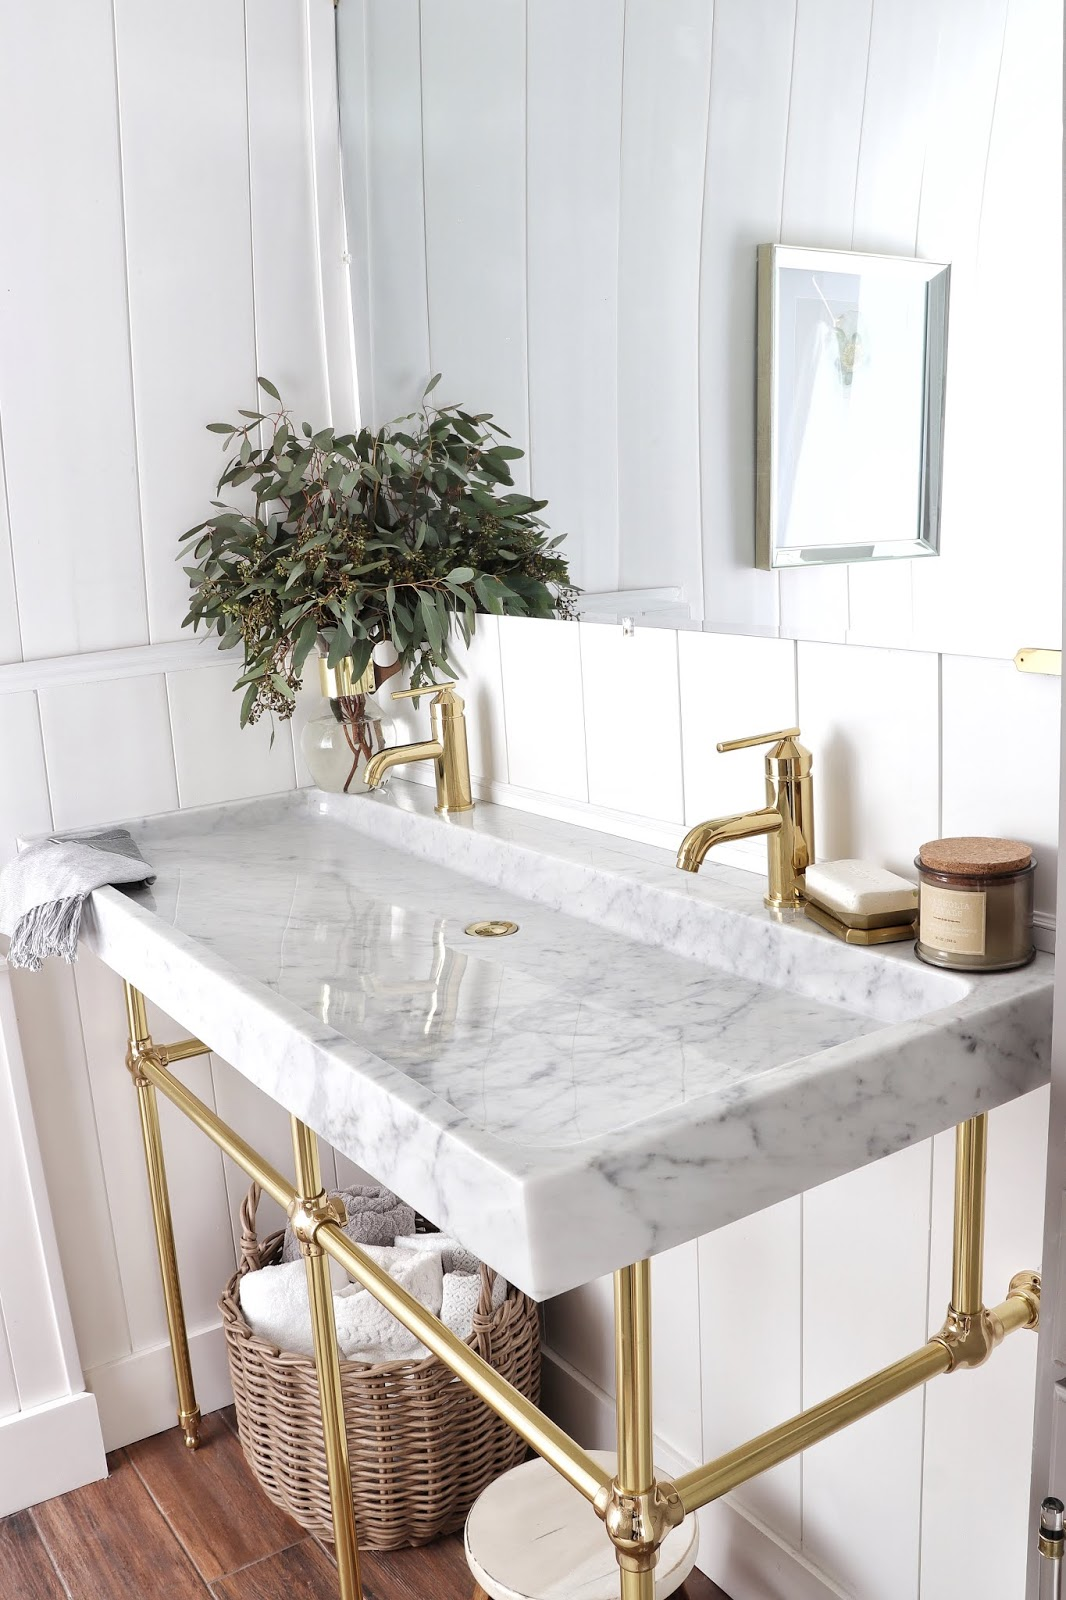 This gold hardware and natural stone makes this space so luxurious!